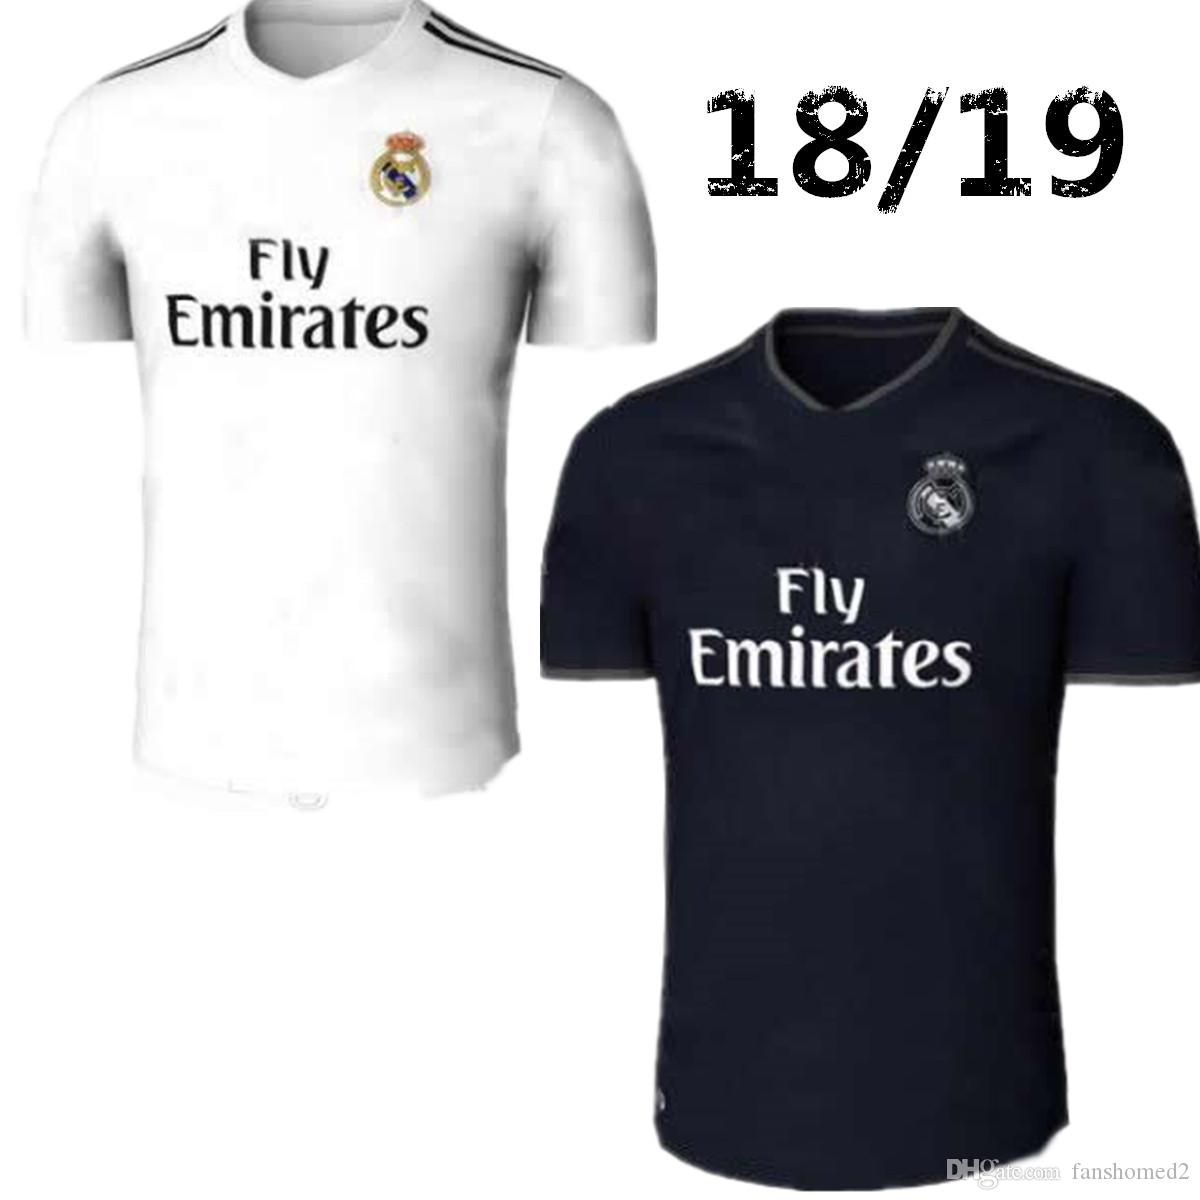 94bda069210 2019 18 19 Real Madrid Soccer Jerseys Home Away Romaldo 2018 2019 BALE  ASENSIO MARCELO KROOS ISCO BENZEMA Camiseta De Fútbol Football Shirts From  Fanshomed2 ...